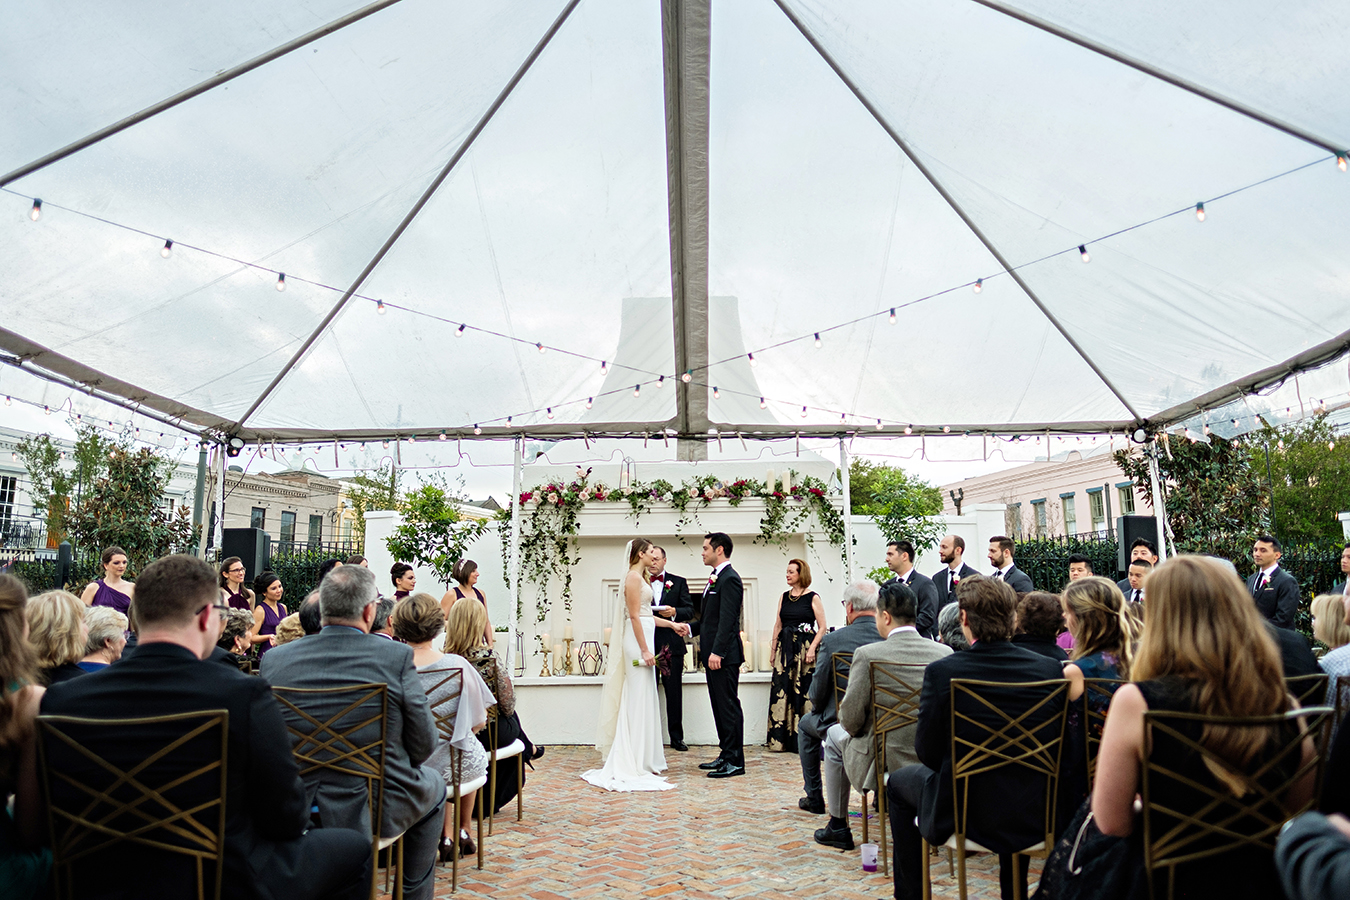 The wedding ceremony took place in Il Mercato's courtyard under a clear tent.